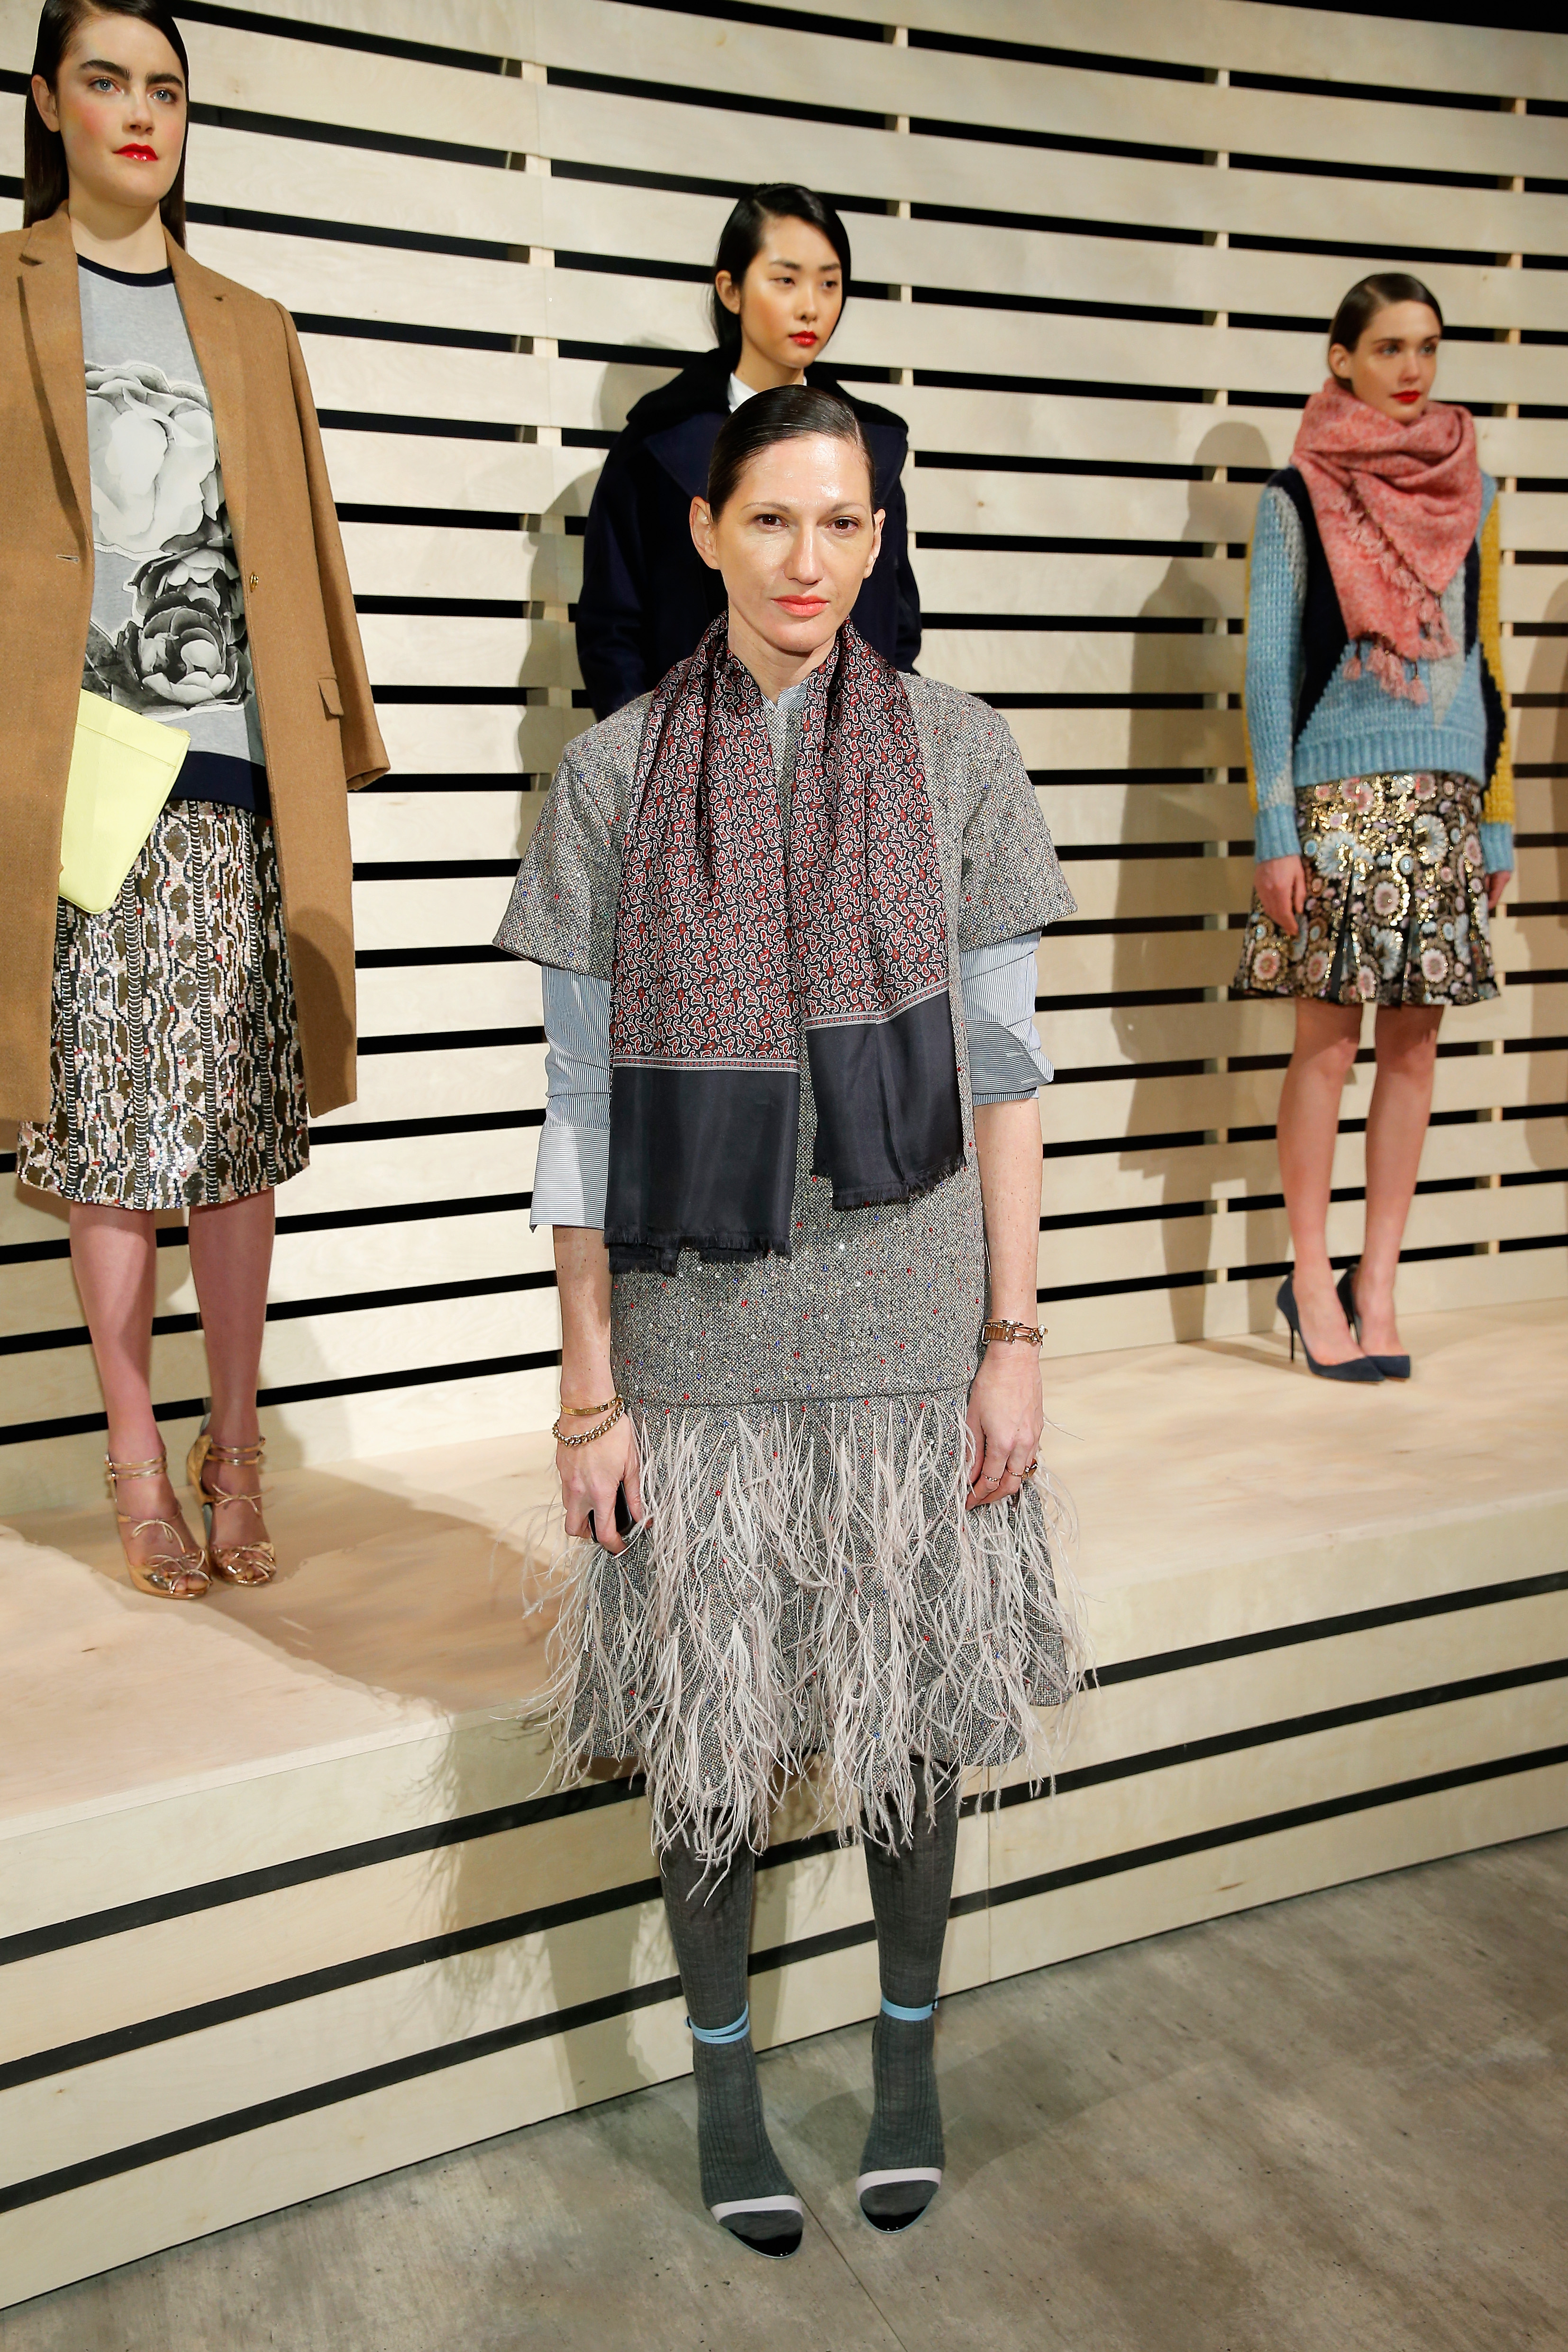 Jenna Lyons with J. Crew's fall and winter 2014 collection, on display at Fashion Week. (Photo via Getty)